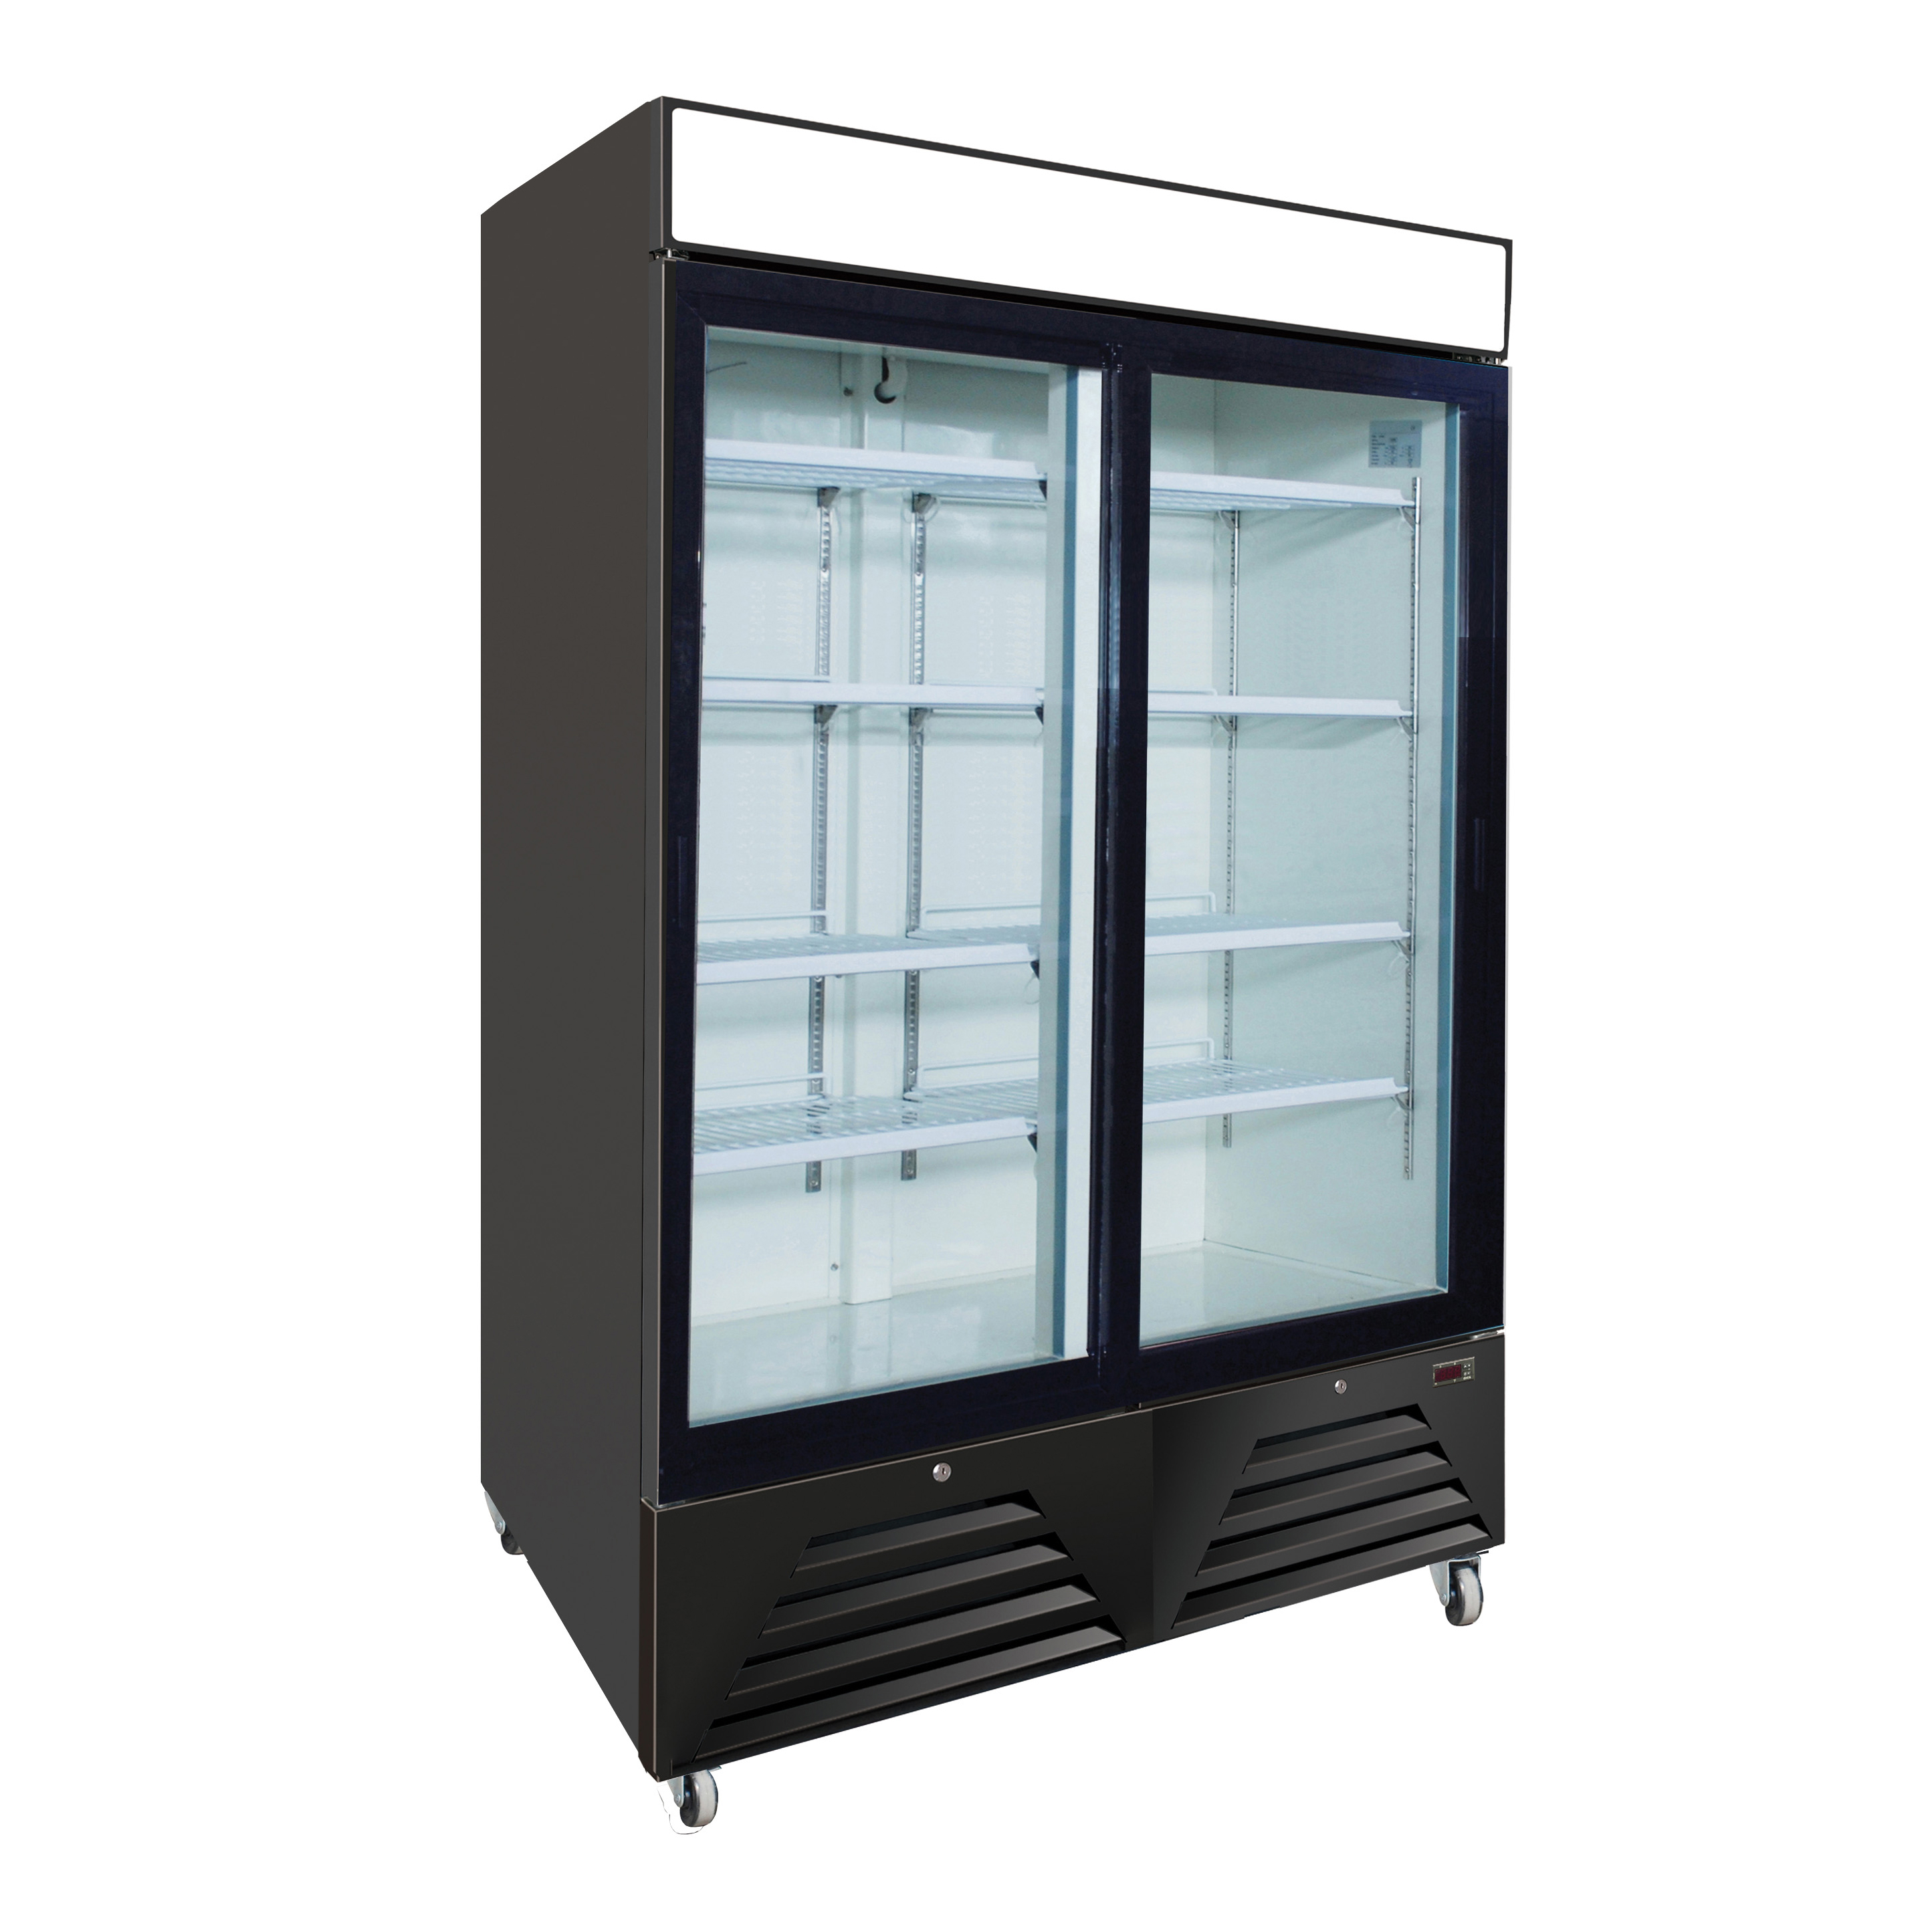 Nor-Lake NLRGM48SB refrigerator, merchandiser